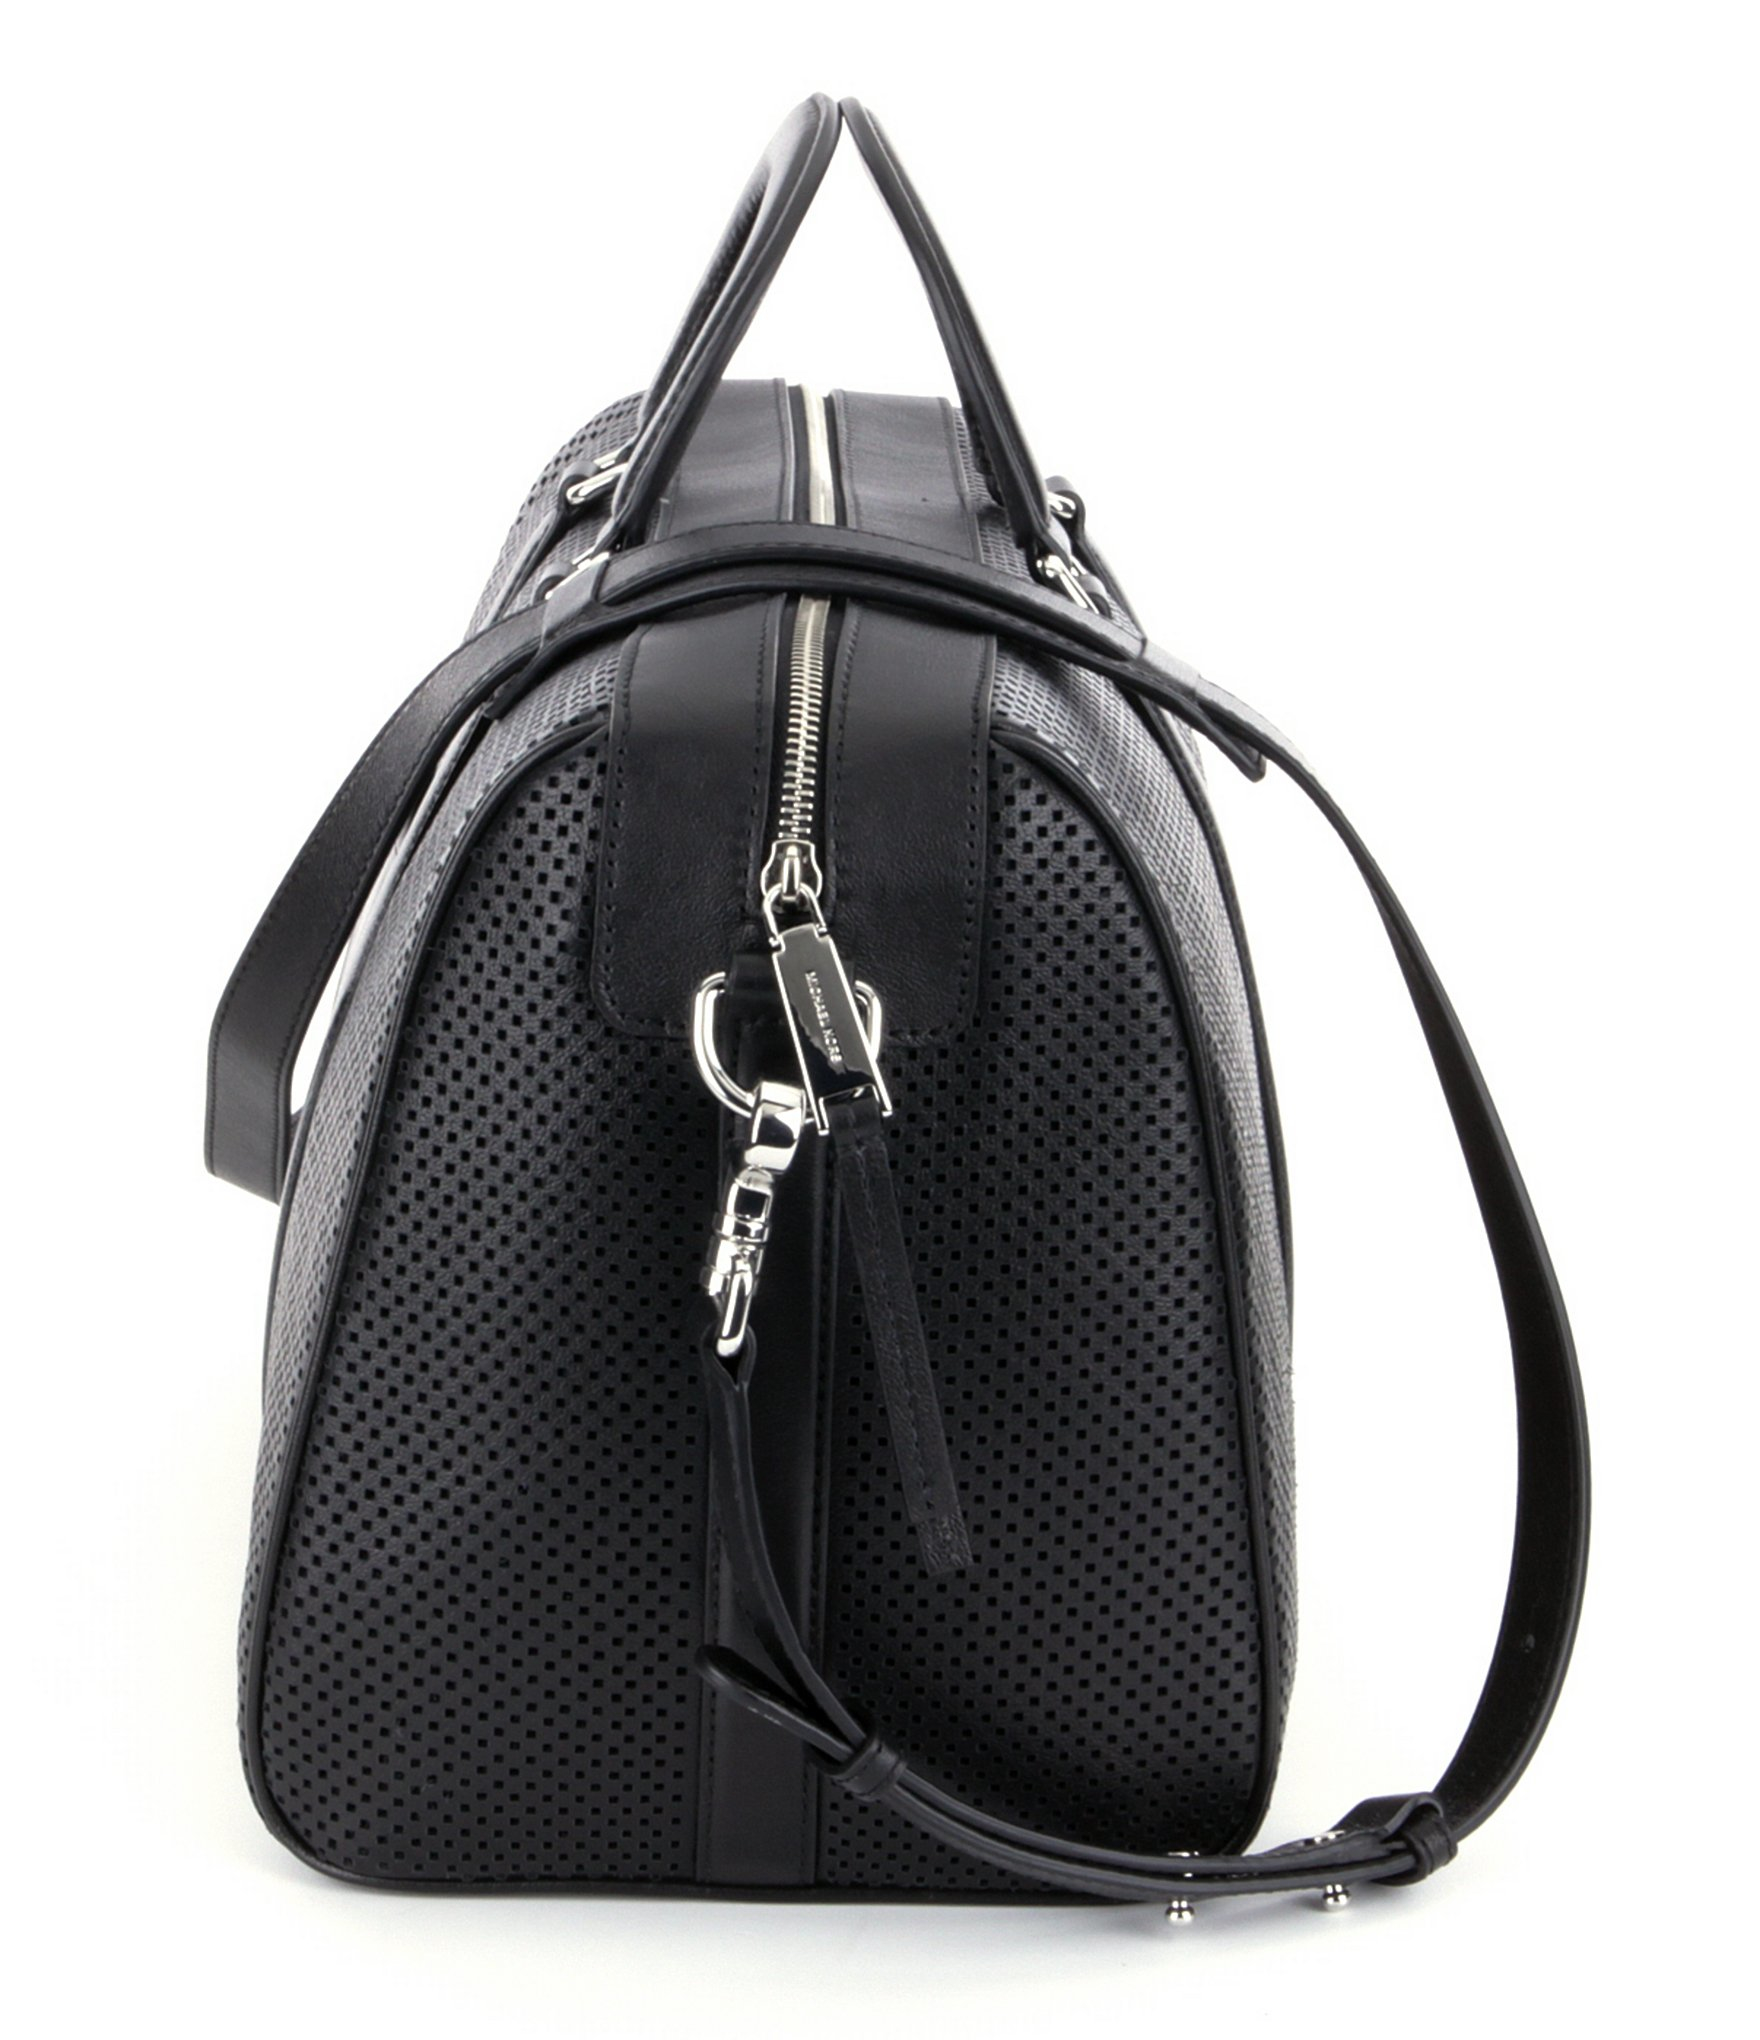 9b84d0eb84e81d MICHAEL Michael Kors Libby Perforated Gym Bag in Black for Men - Lyst